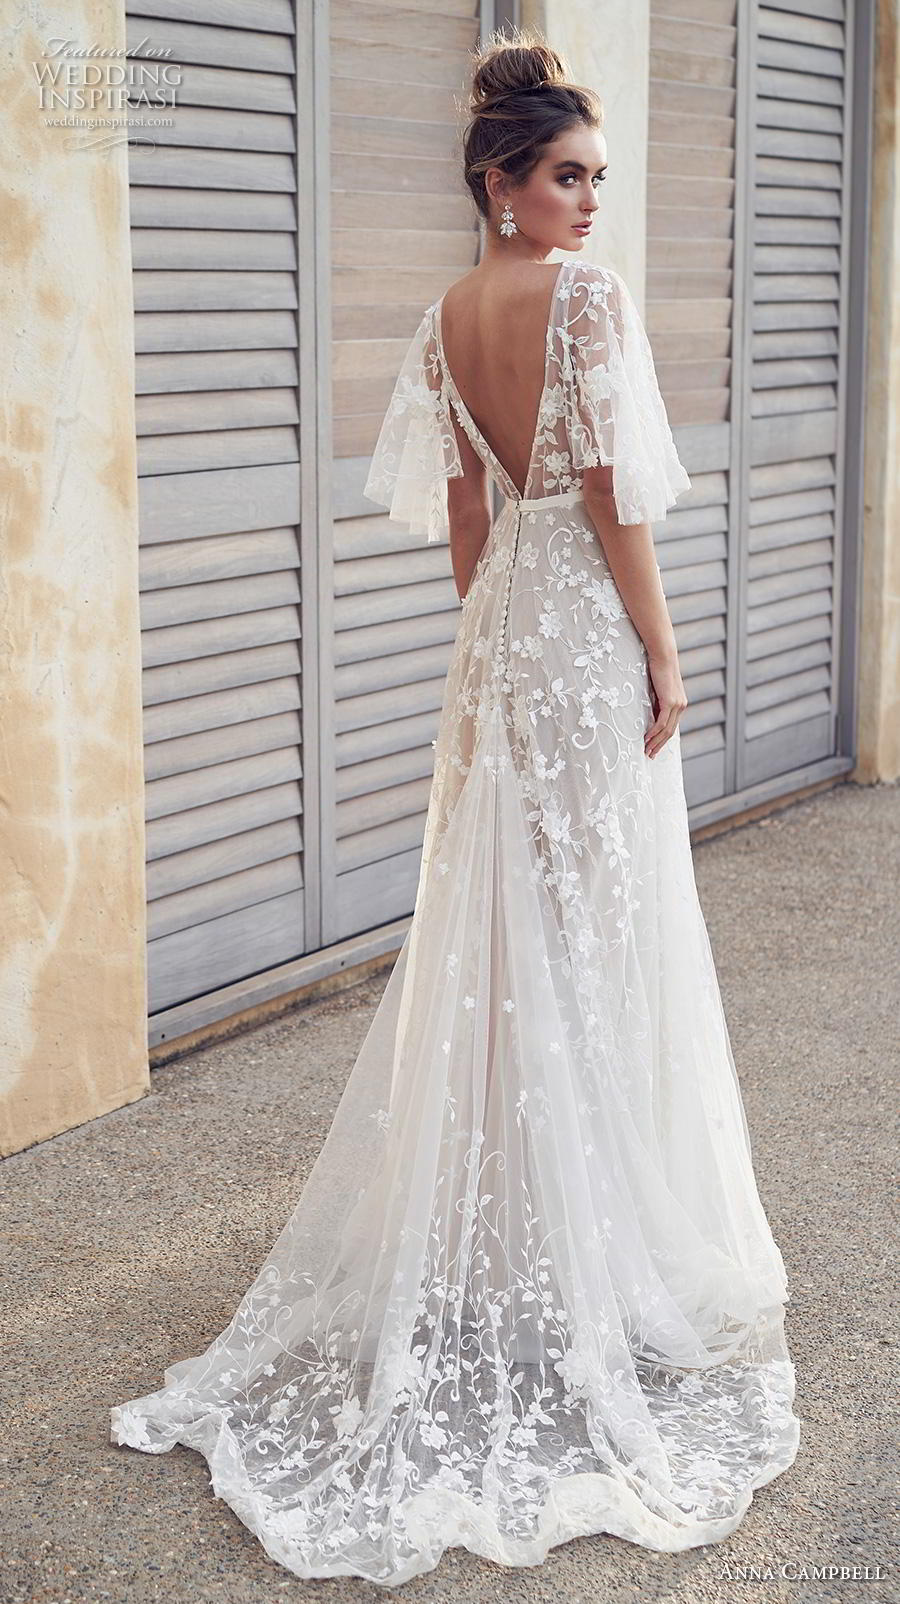 anna campbell 2019 bridal half handkerchief sleeves v neck full embellishment romantic pretty soft a line wedding dress blackess open back sweep train (1) bv